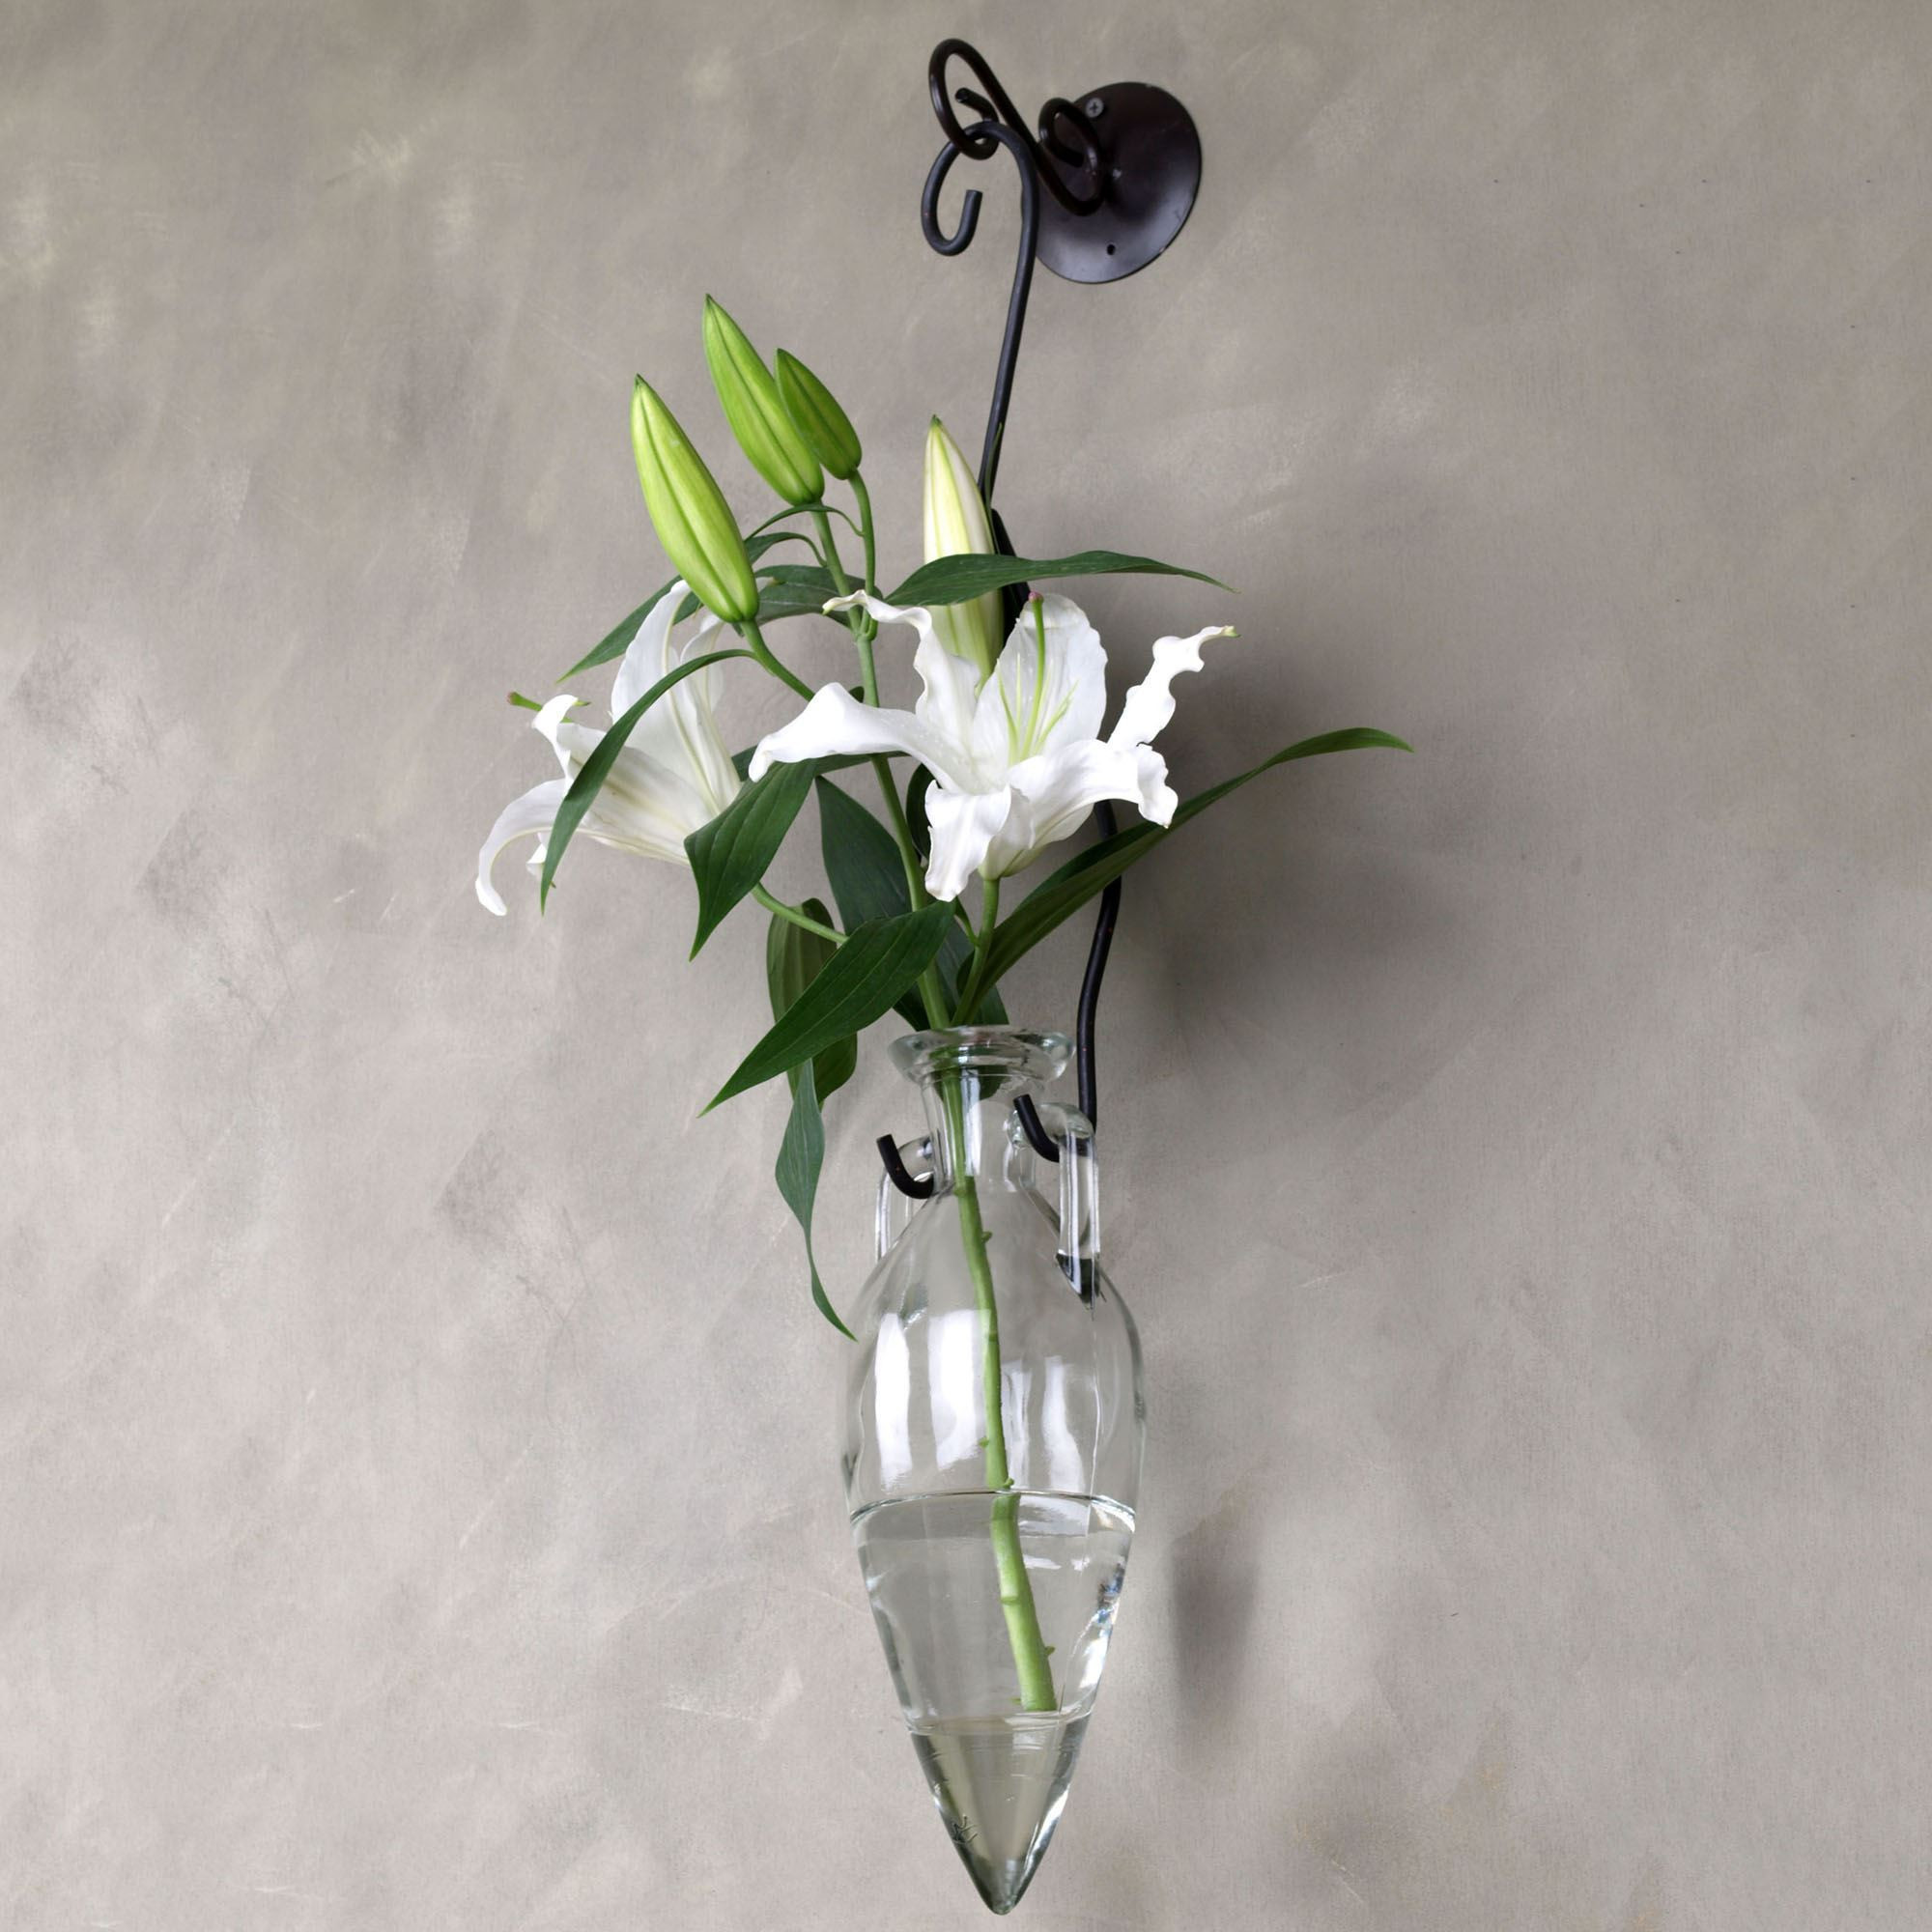 tall purple glass vases of giant glass vase photos h vases wall hanging flower vase newspaper i inside giant glass vase photos h vases wall hanging flower vase newspaper i 0d scheme wall scheme